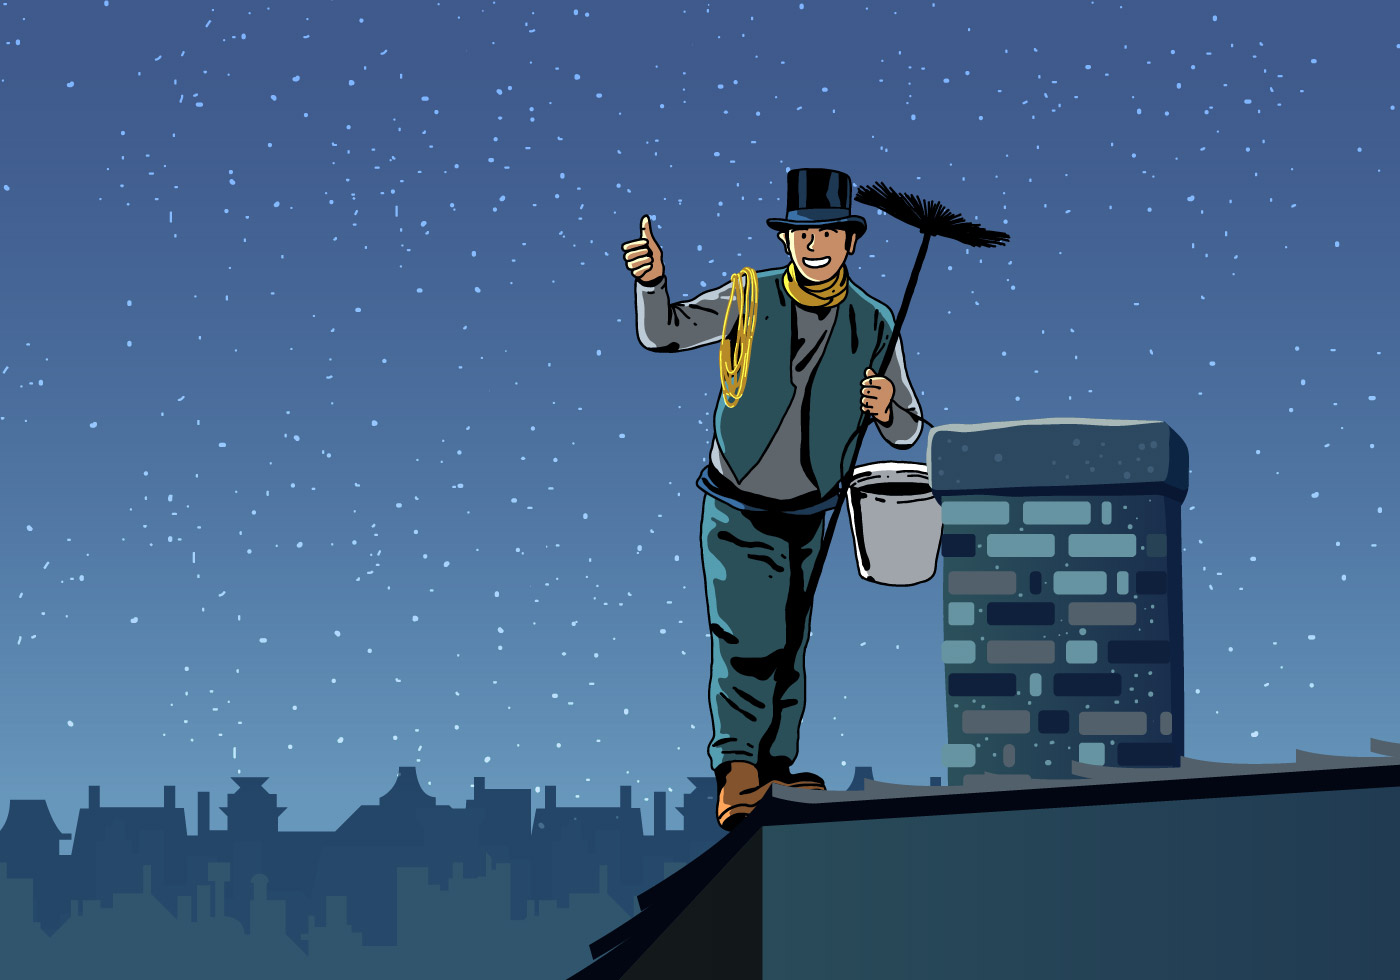 Chimney Sweep Holding Sweeper Download Free Vector Art